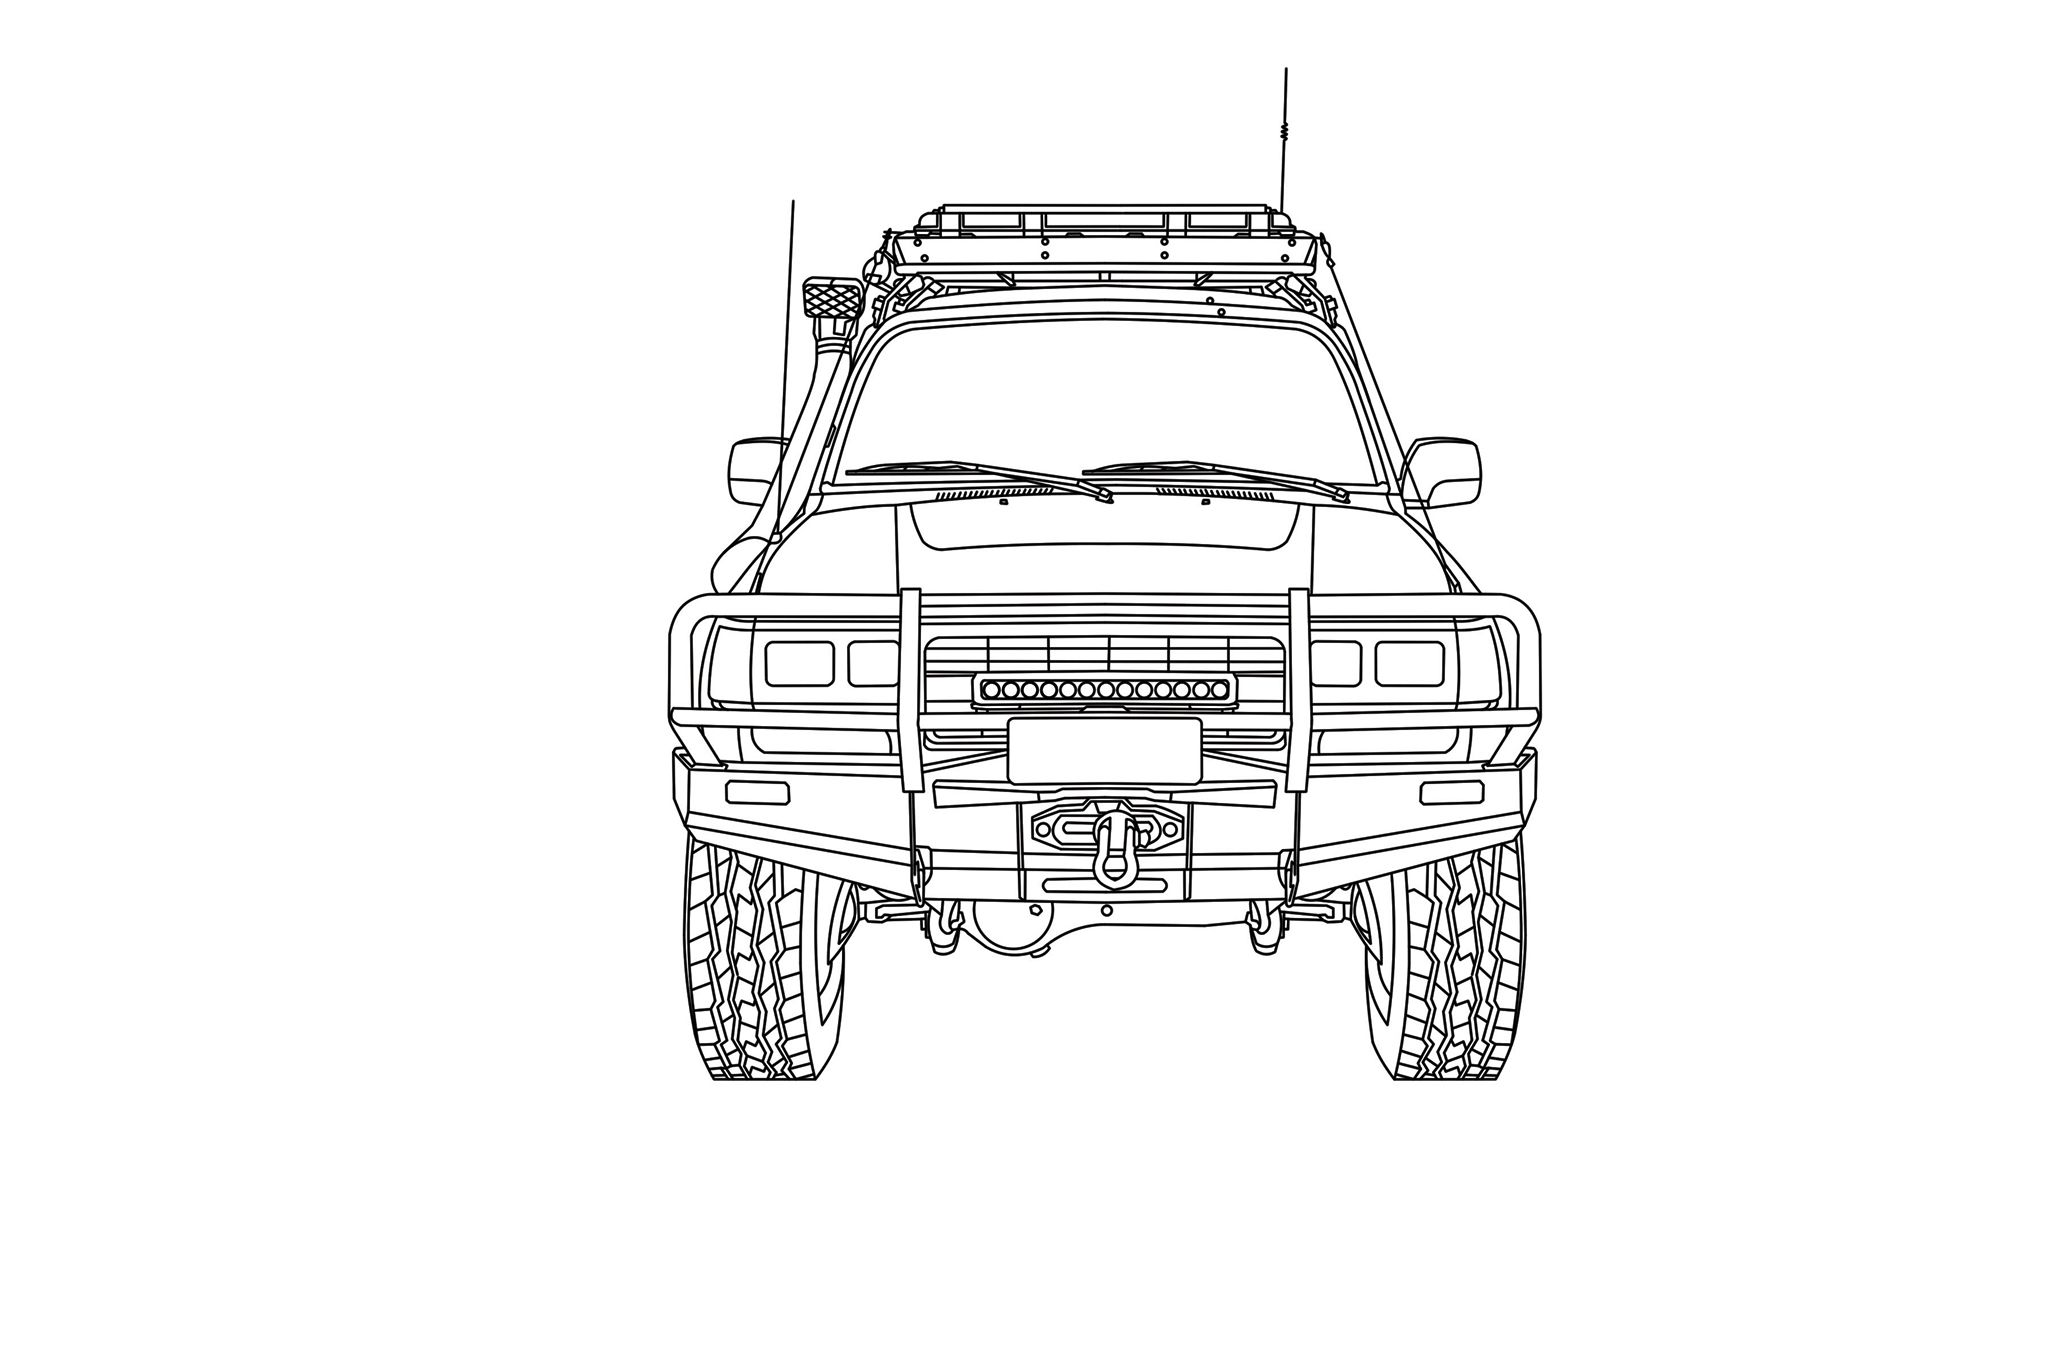 1994toyotalandcruiserdiagramrear | FJ45LV Project